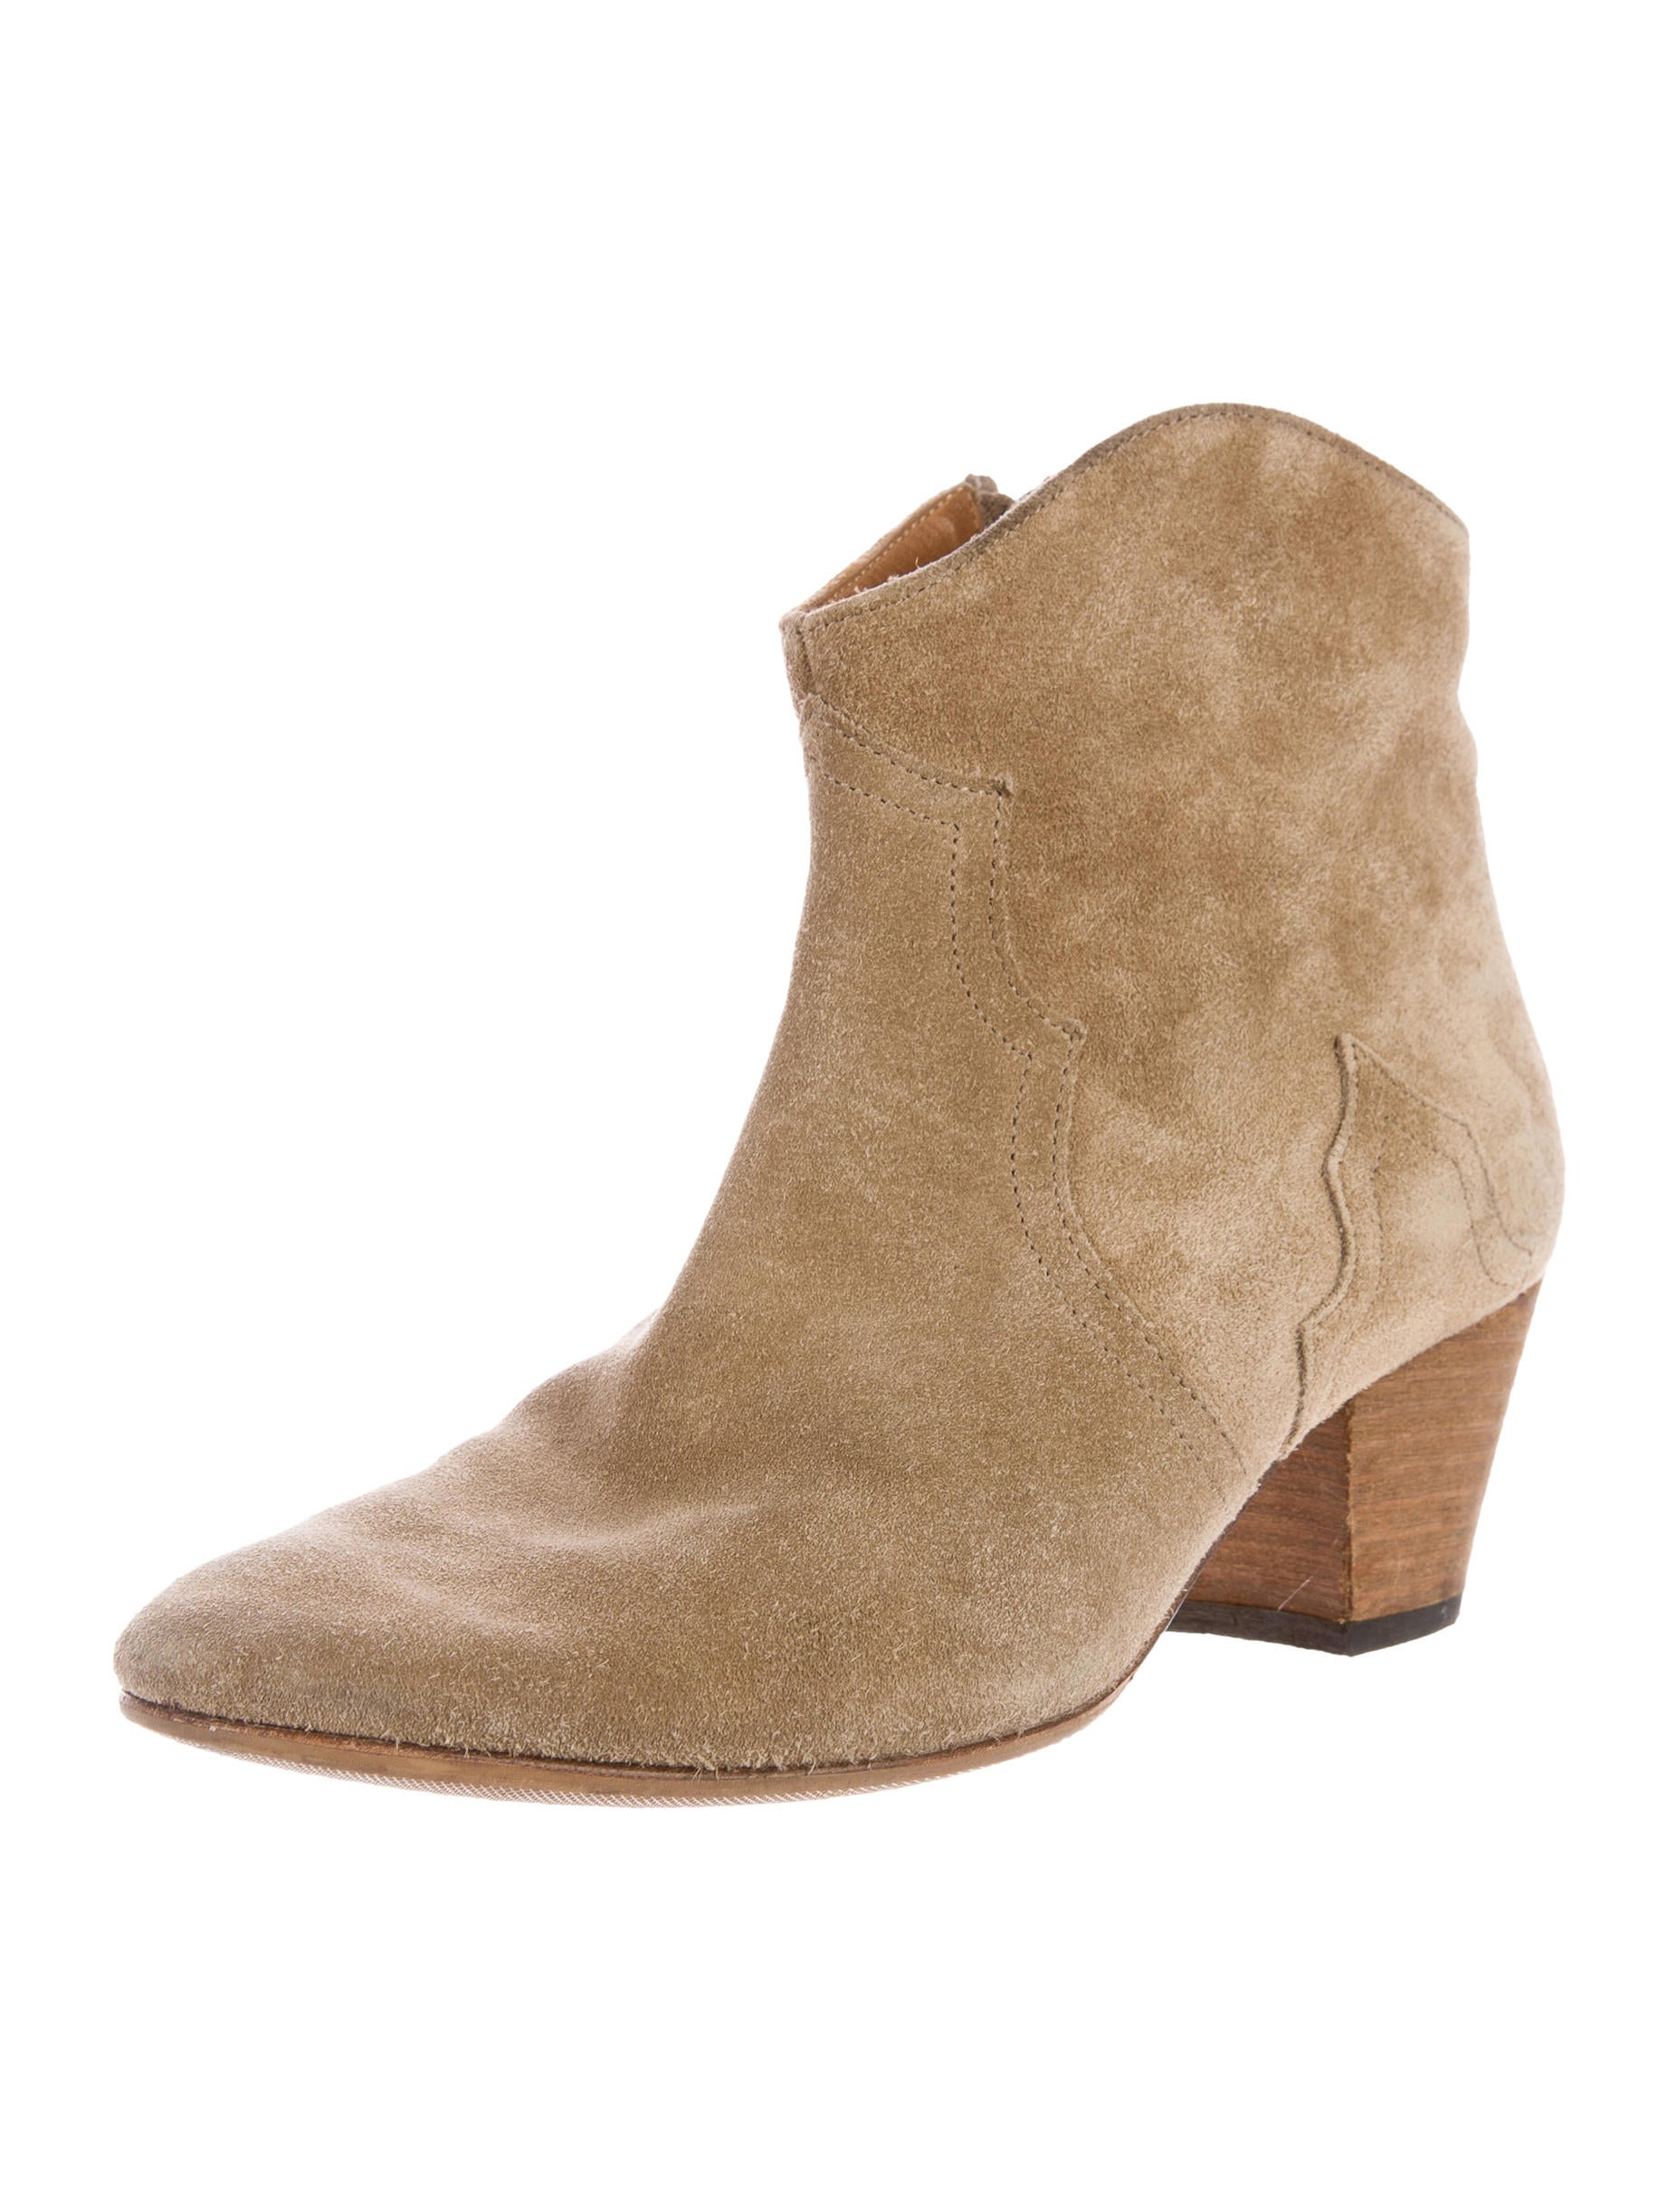 marant dicker suede ankle boots shoes isa40034